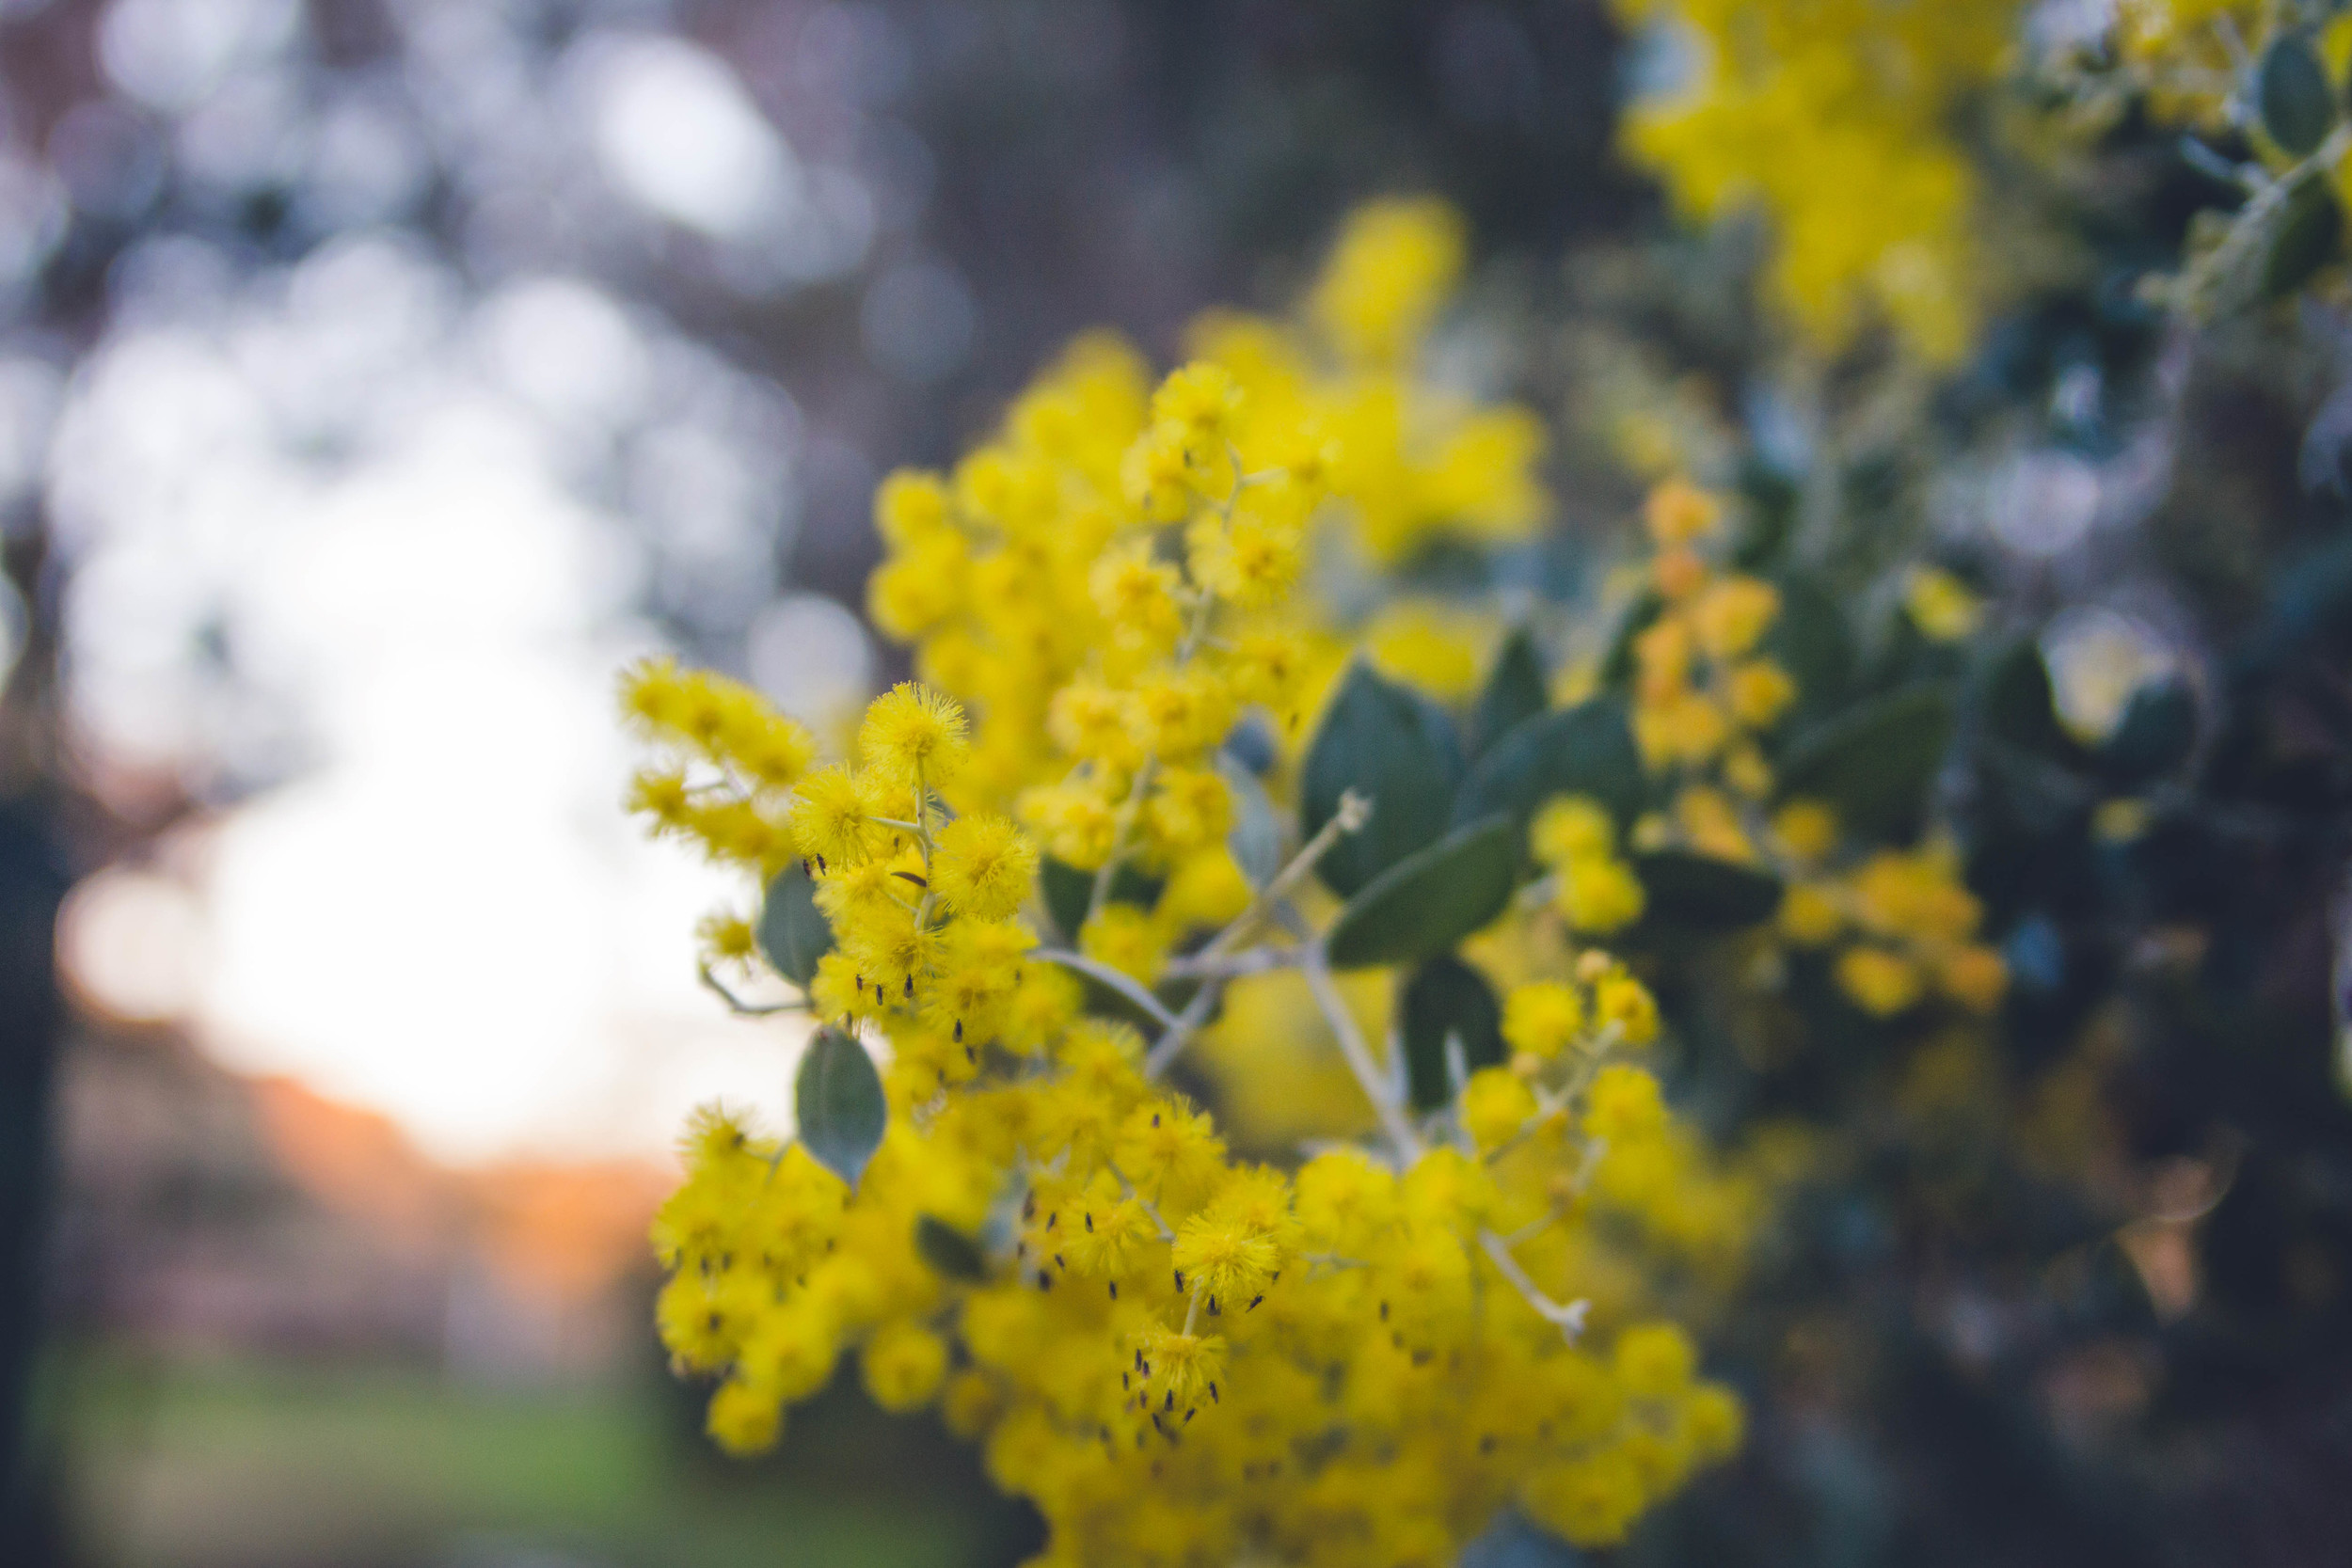 I really love Aussie Wattles. They are full of colours and so vital. Love them!